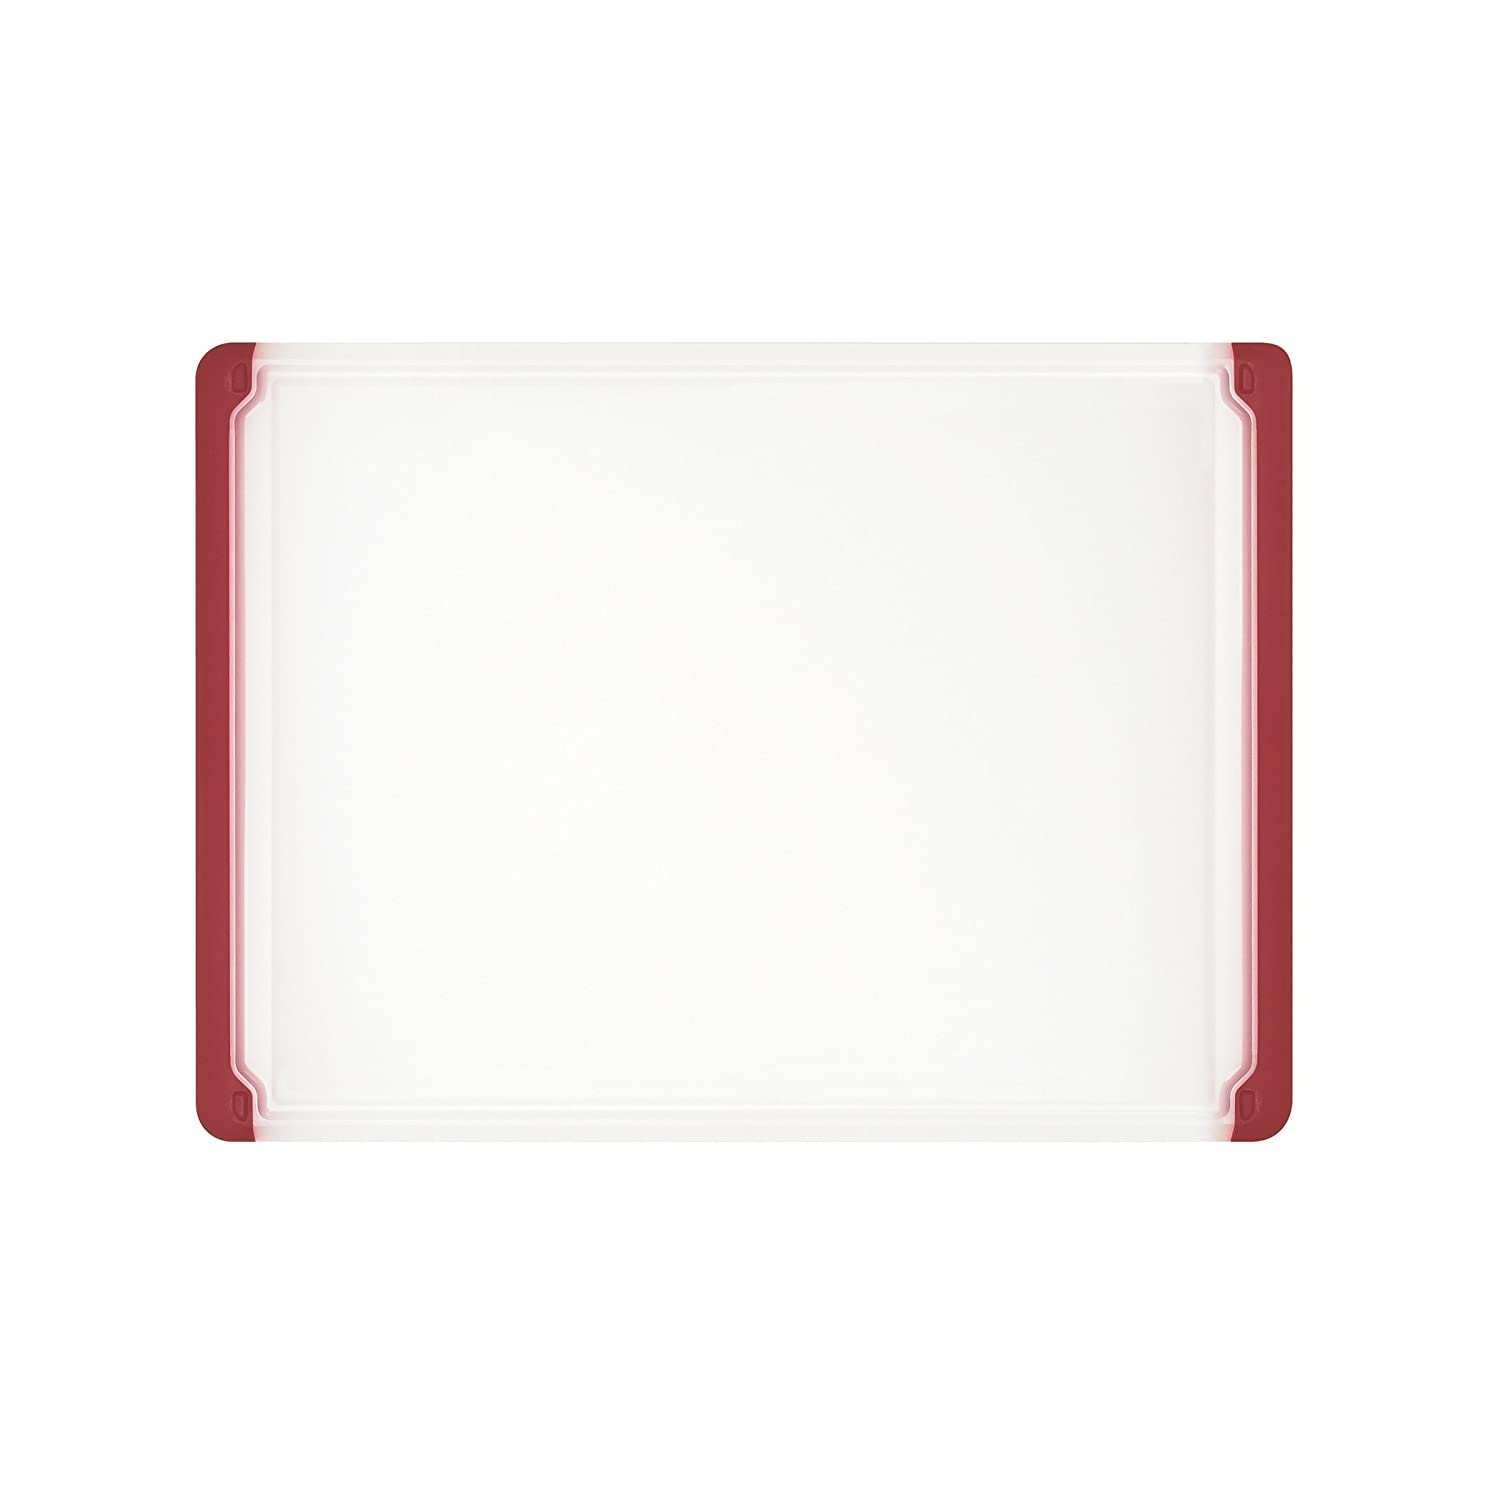 OXO Good Grips 10-1/2-Inch x 14.5-Inch Utility Cutting Board